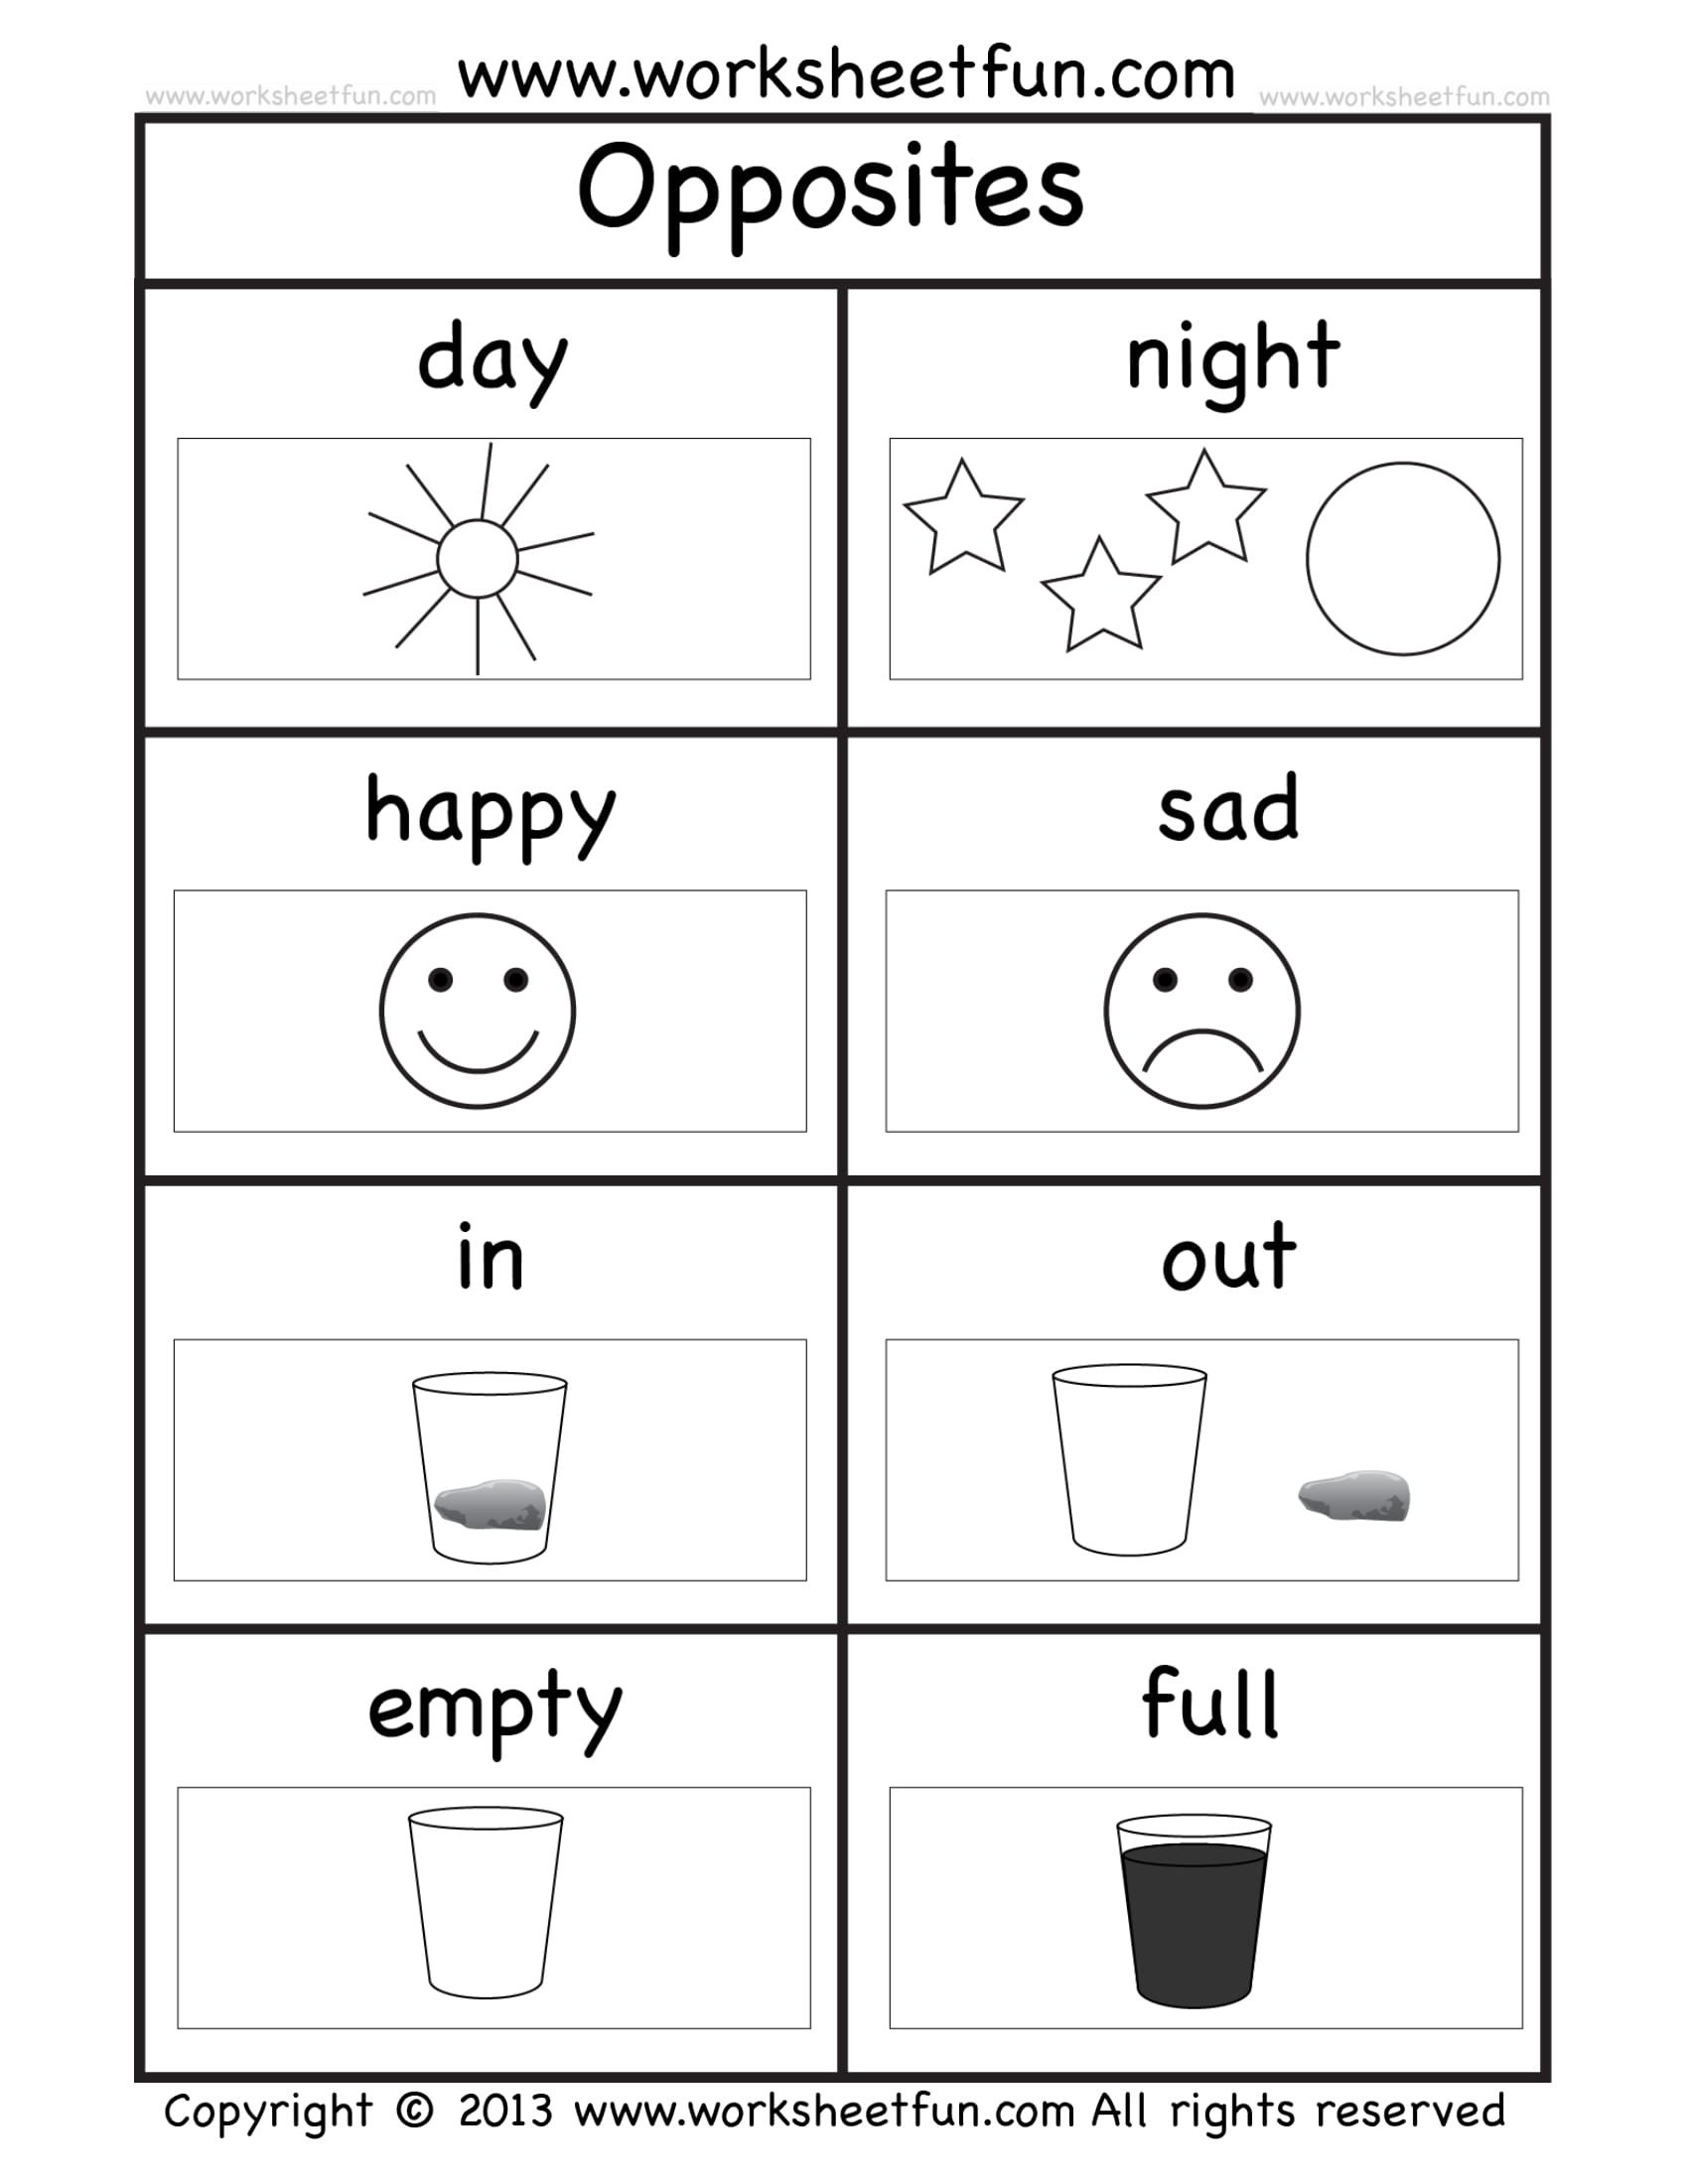 worksheet kindergarten examples pdf sheet image inspirations opposites exercise sample for sequencing